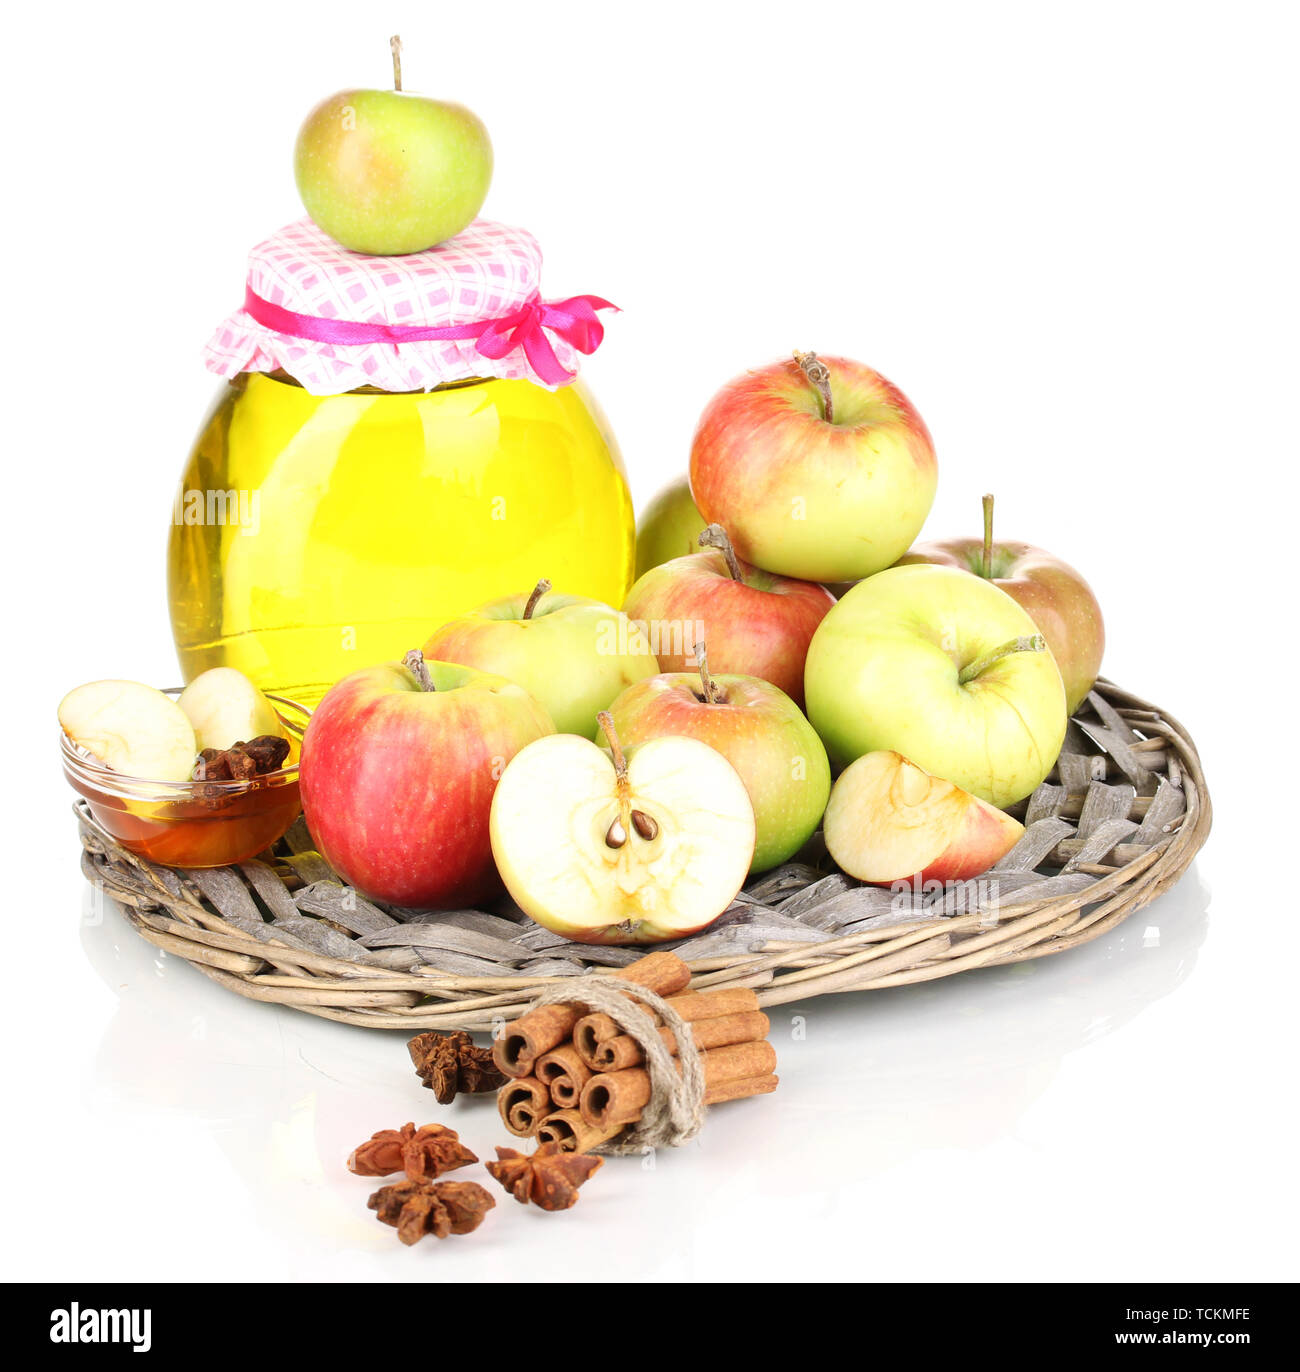 Honey and apples with cinnamon on wicker cradle isolated on white - Stock Image